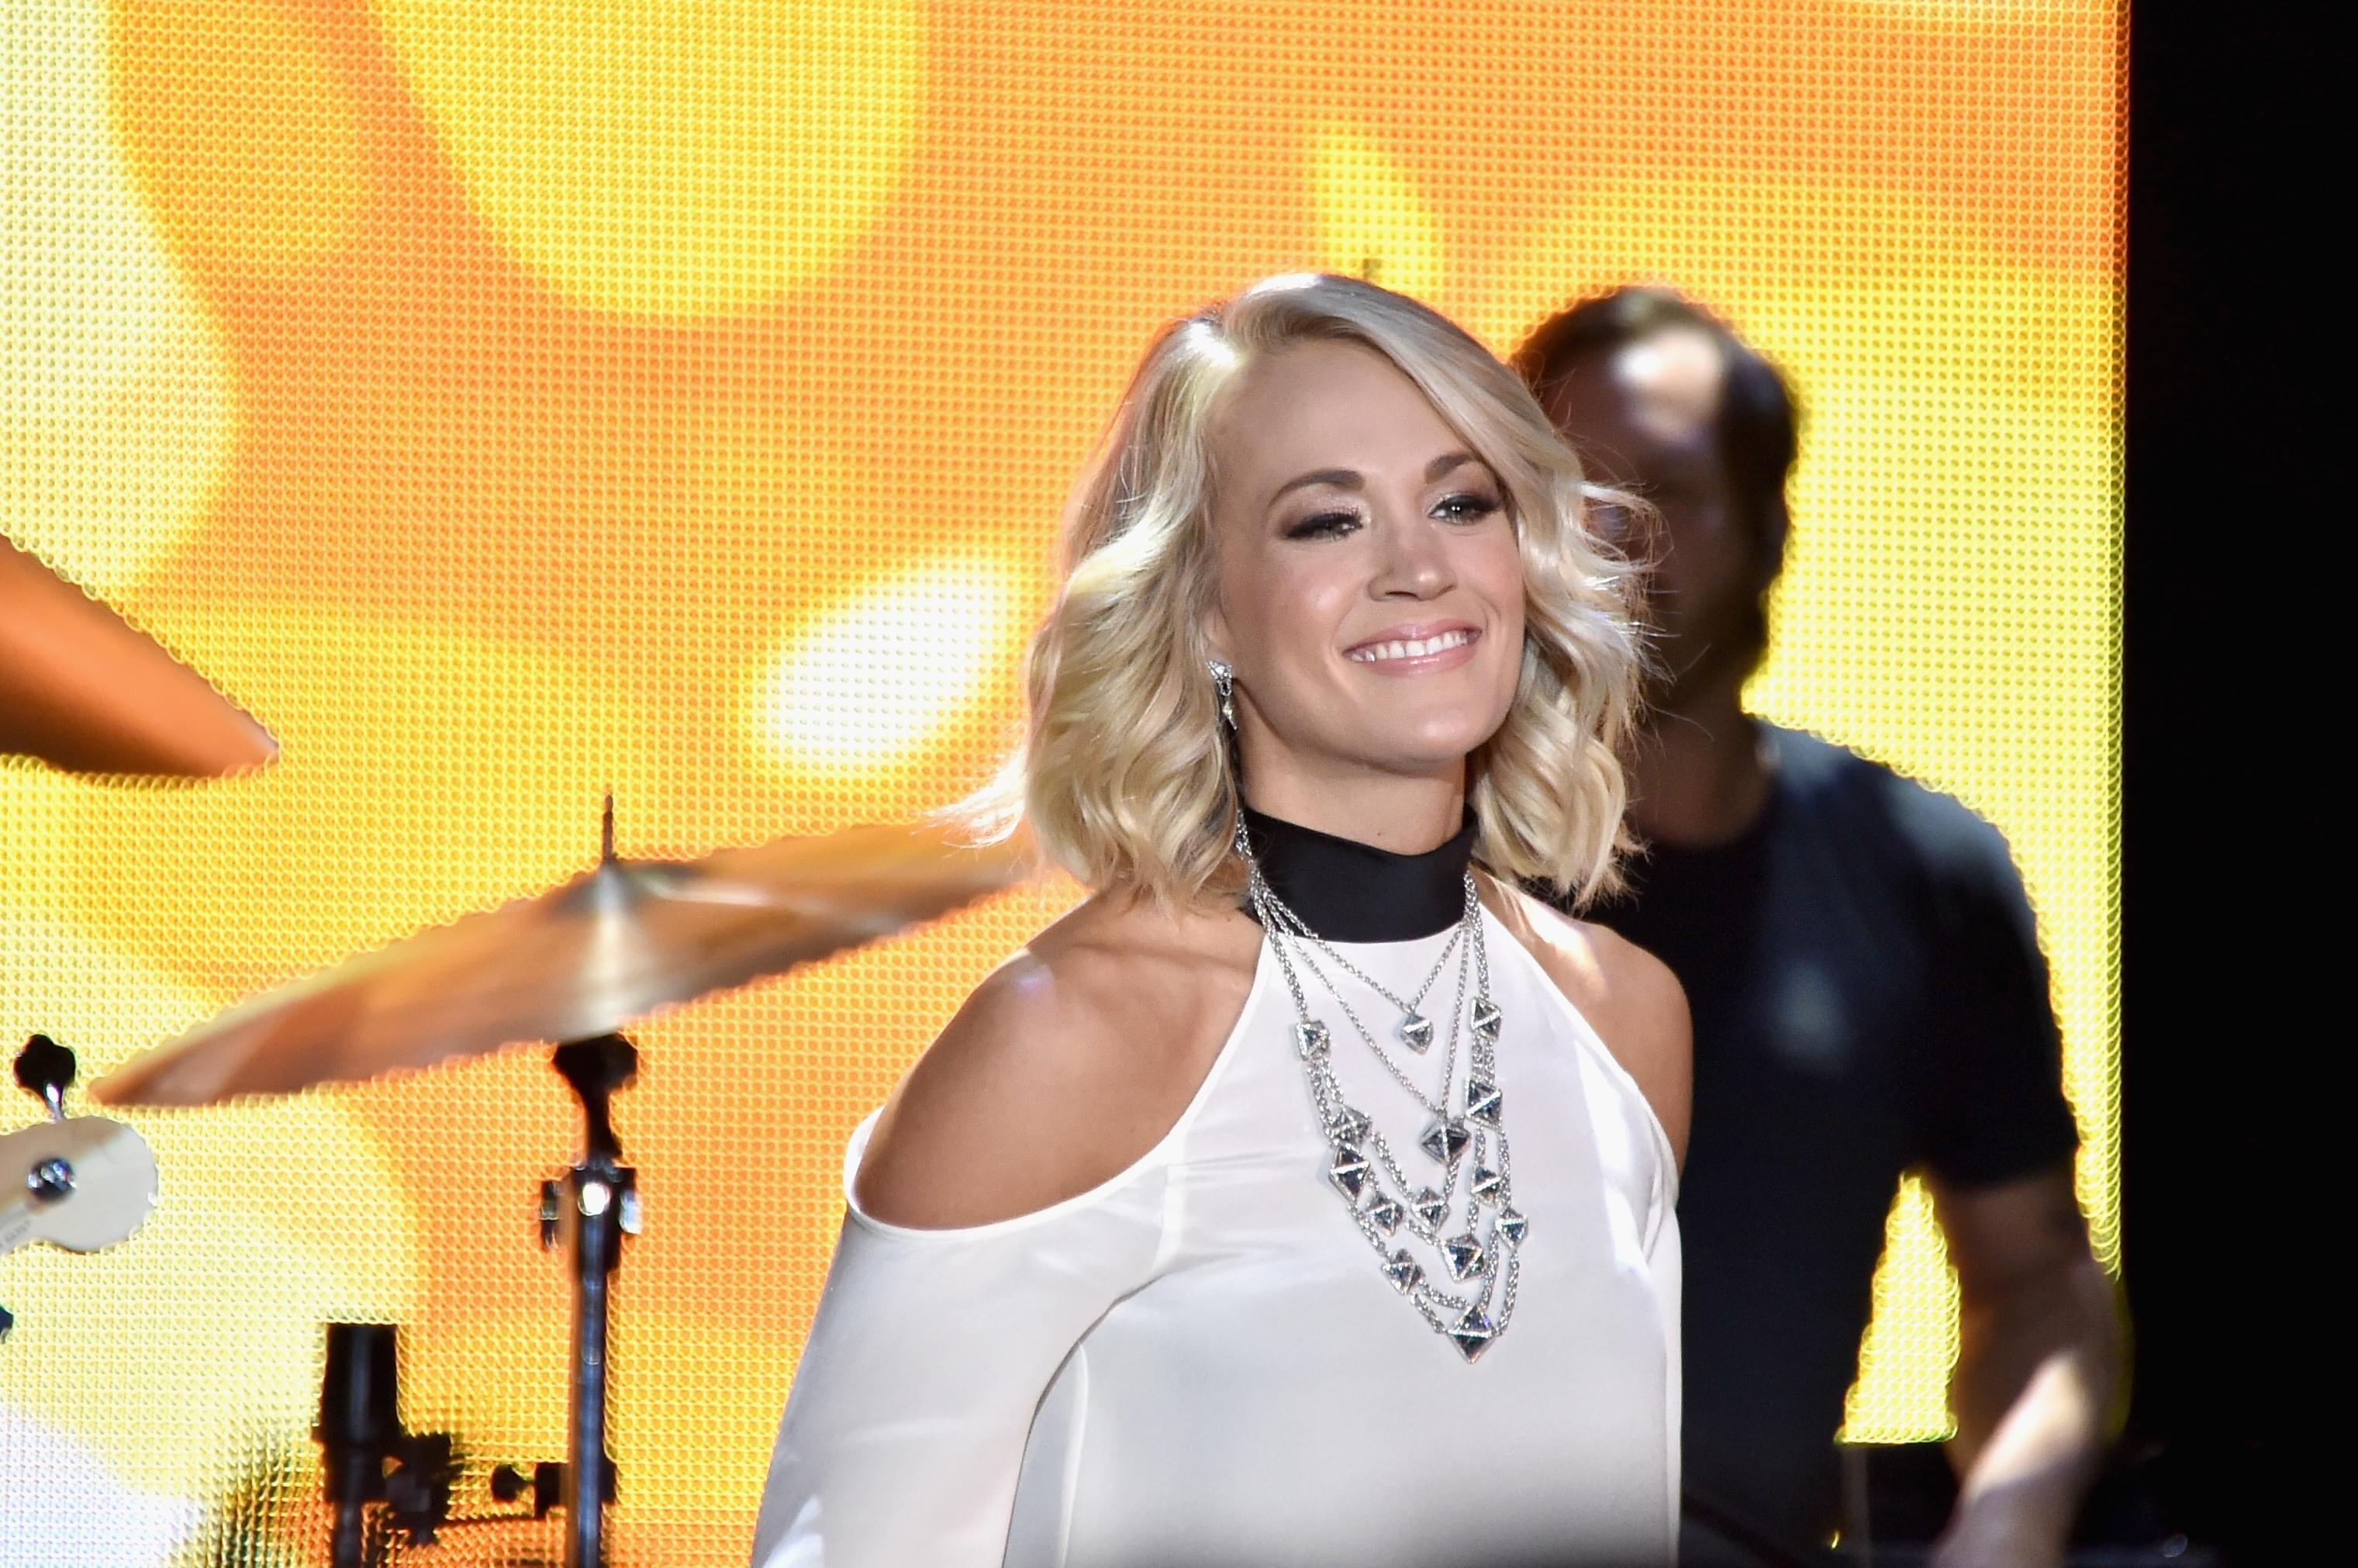 Carrie Underwood Calls ACM Award Winners For Best New Male And Female Vocalist [WATCH]